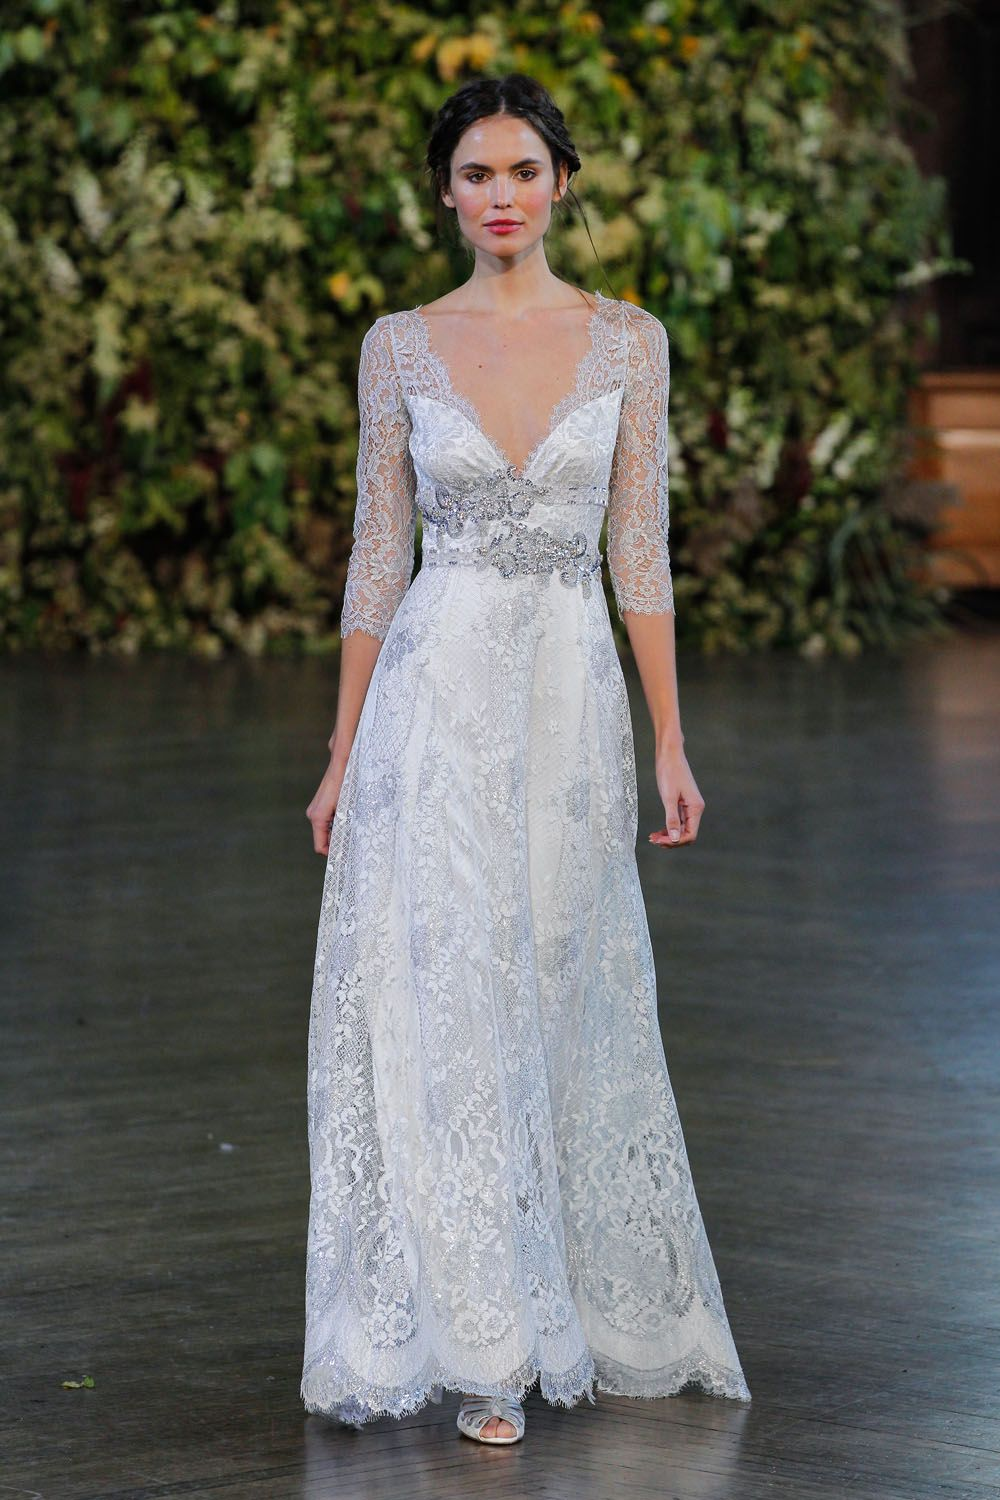 Claire Pettibone's Fall 2015 Wedding Dress Collection Is Seriously Romantic